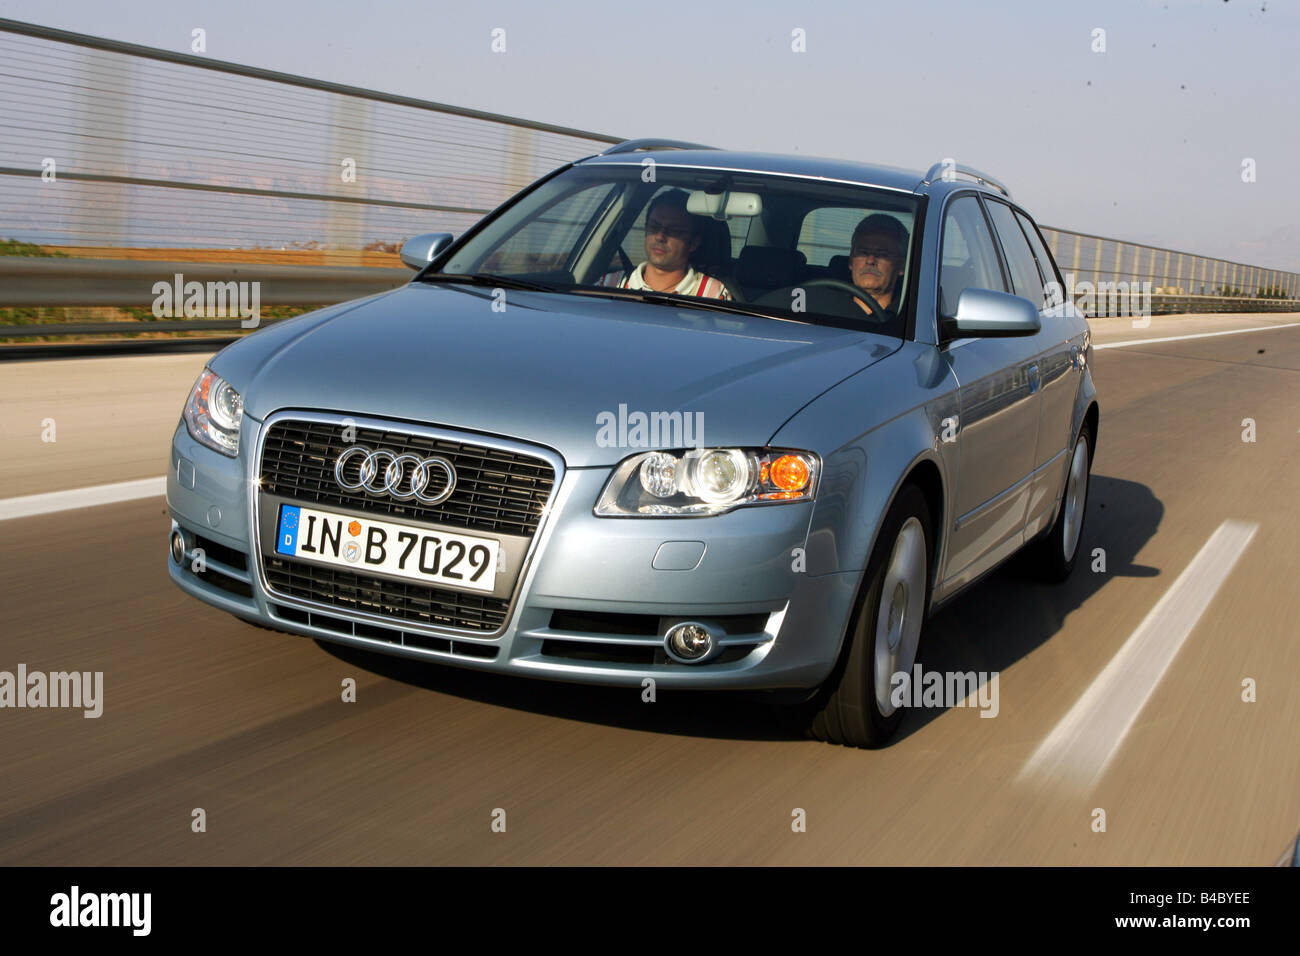 car audi a4 avant facelift model year 2004 silver blue stock photo royalty free image. Black Bedroom Furniture Sets. Home Design Ideas